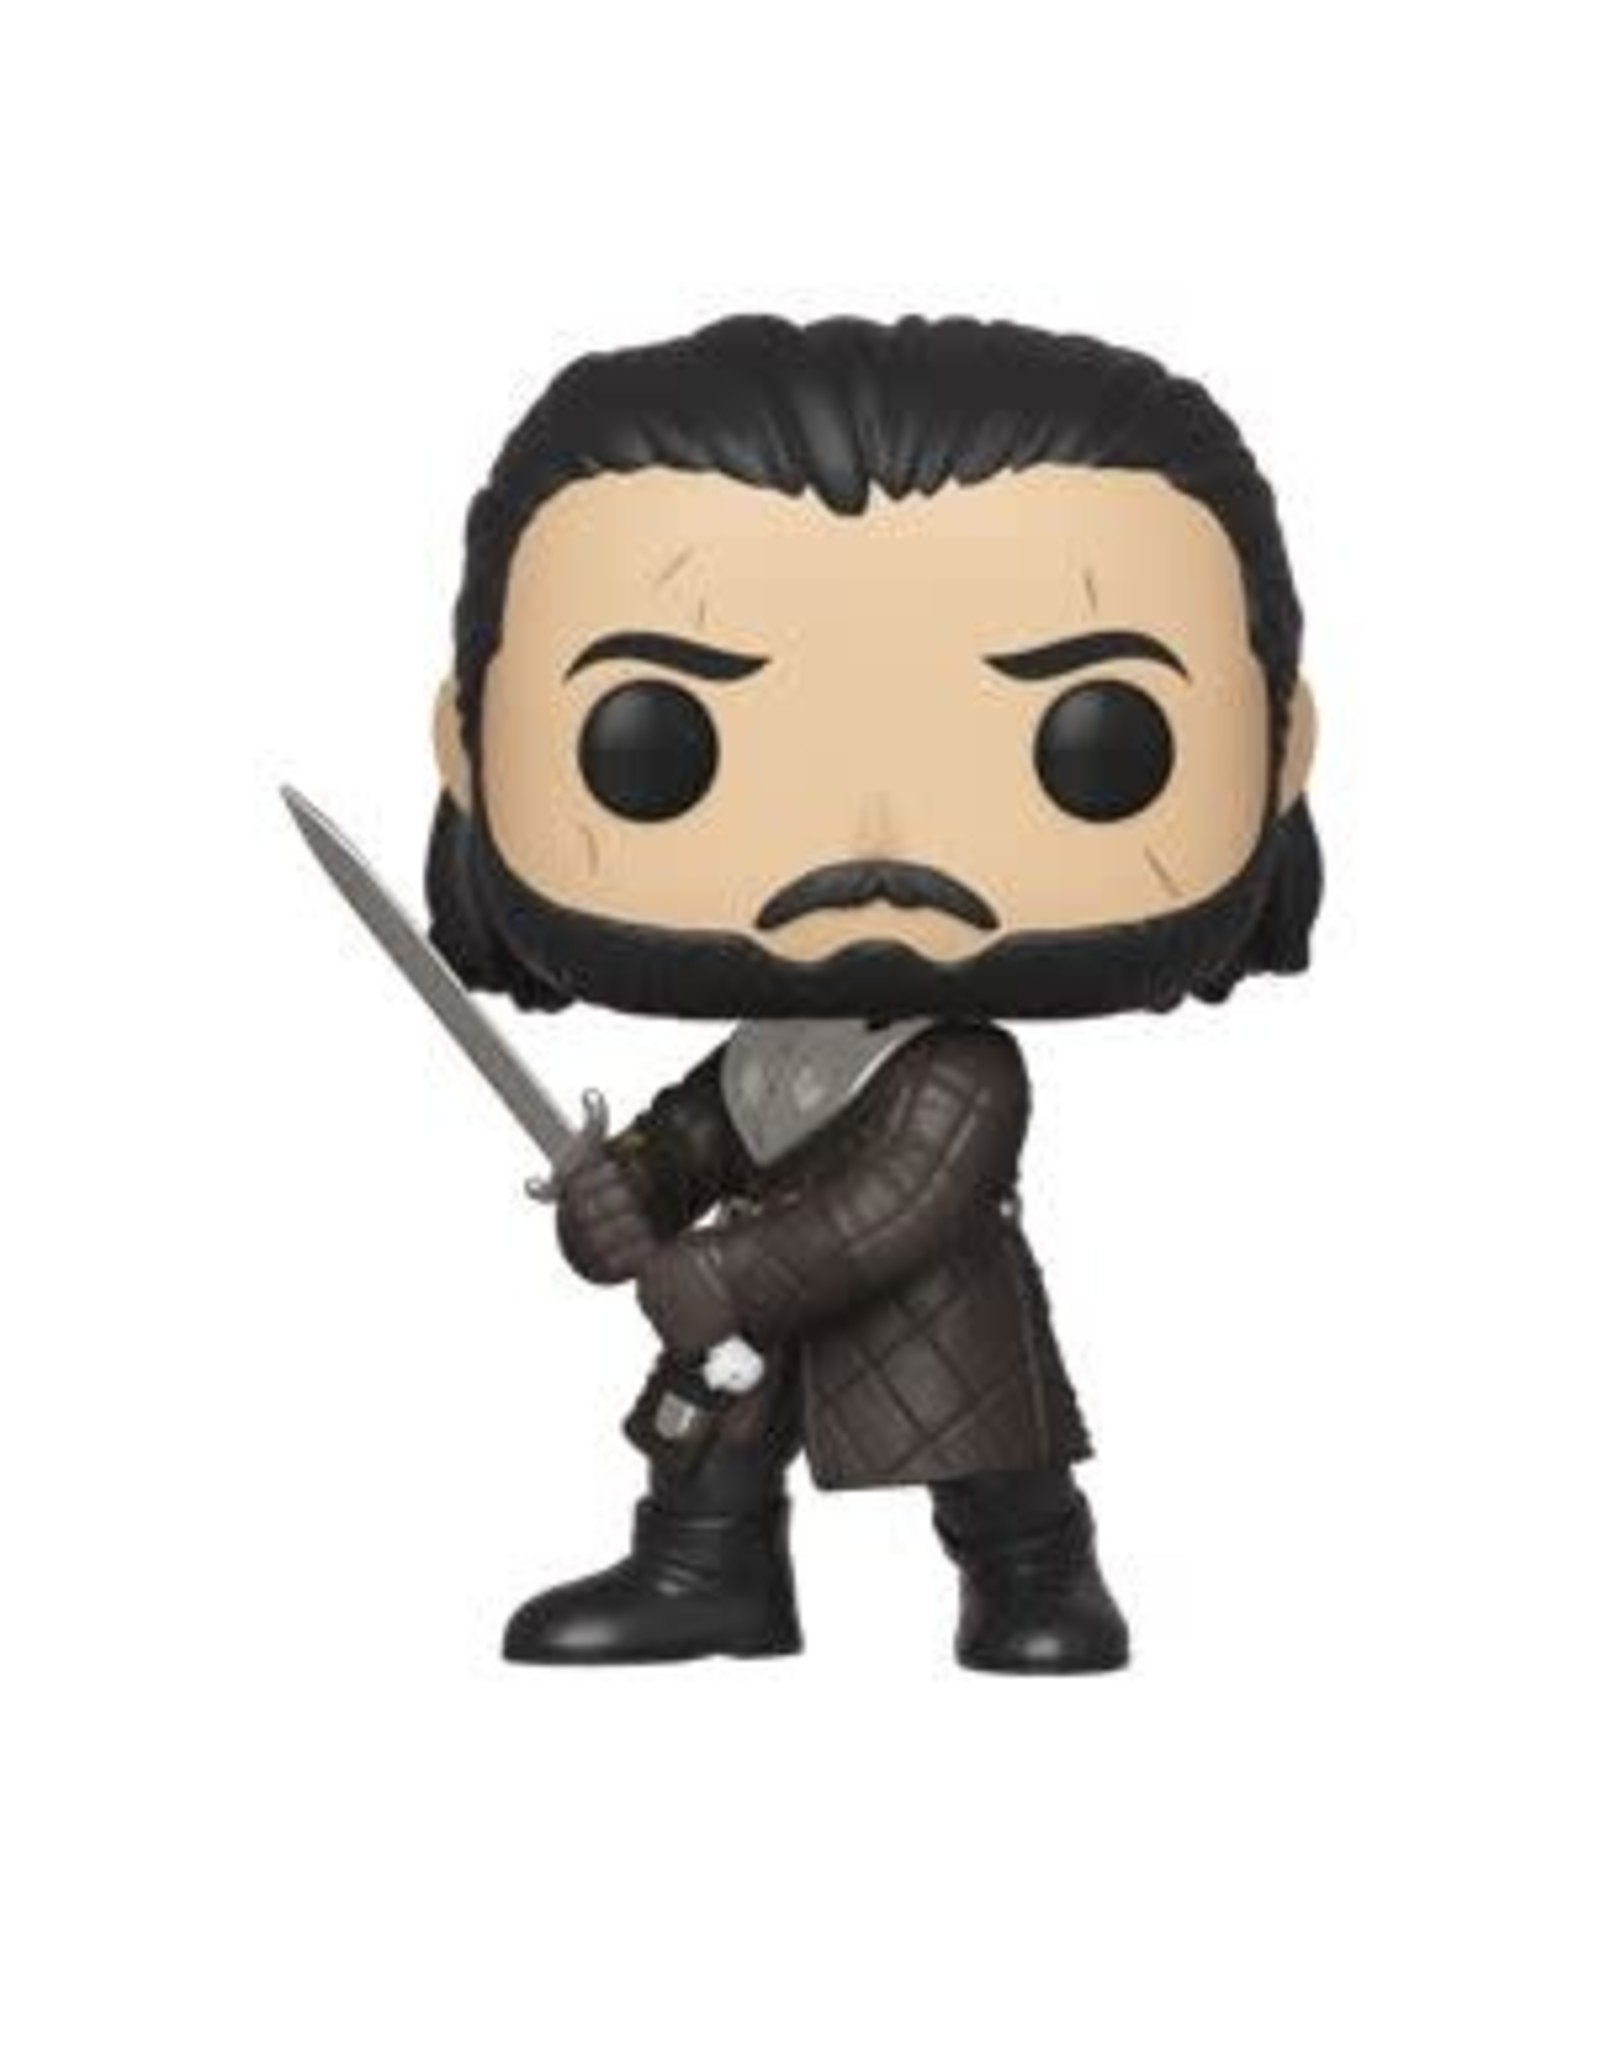 Funko Pop! Funko Pop! Game of Thrones nr080 Jon Snow